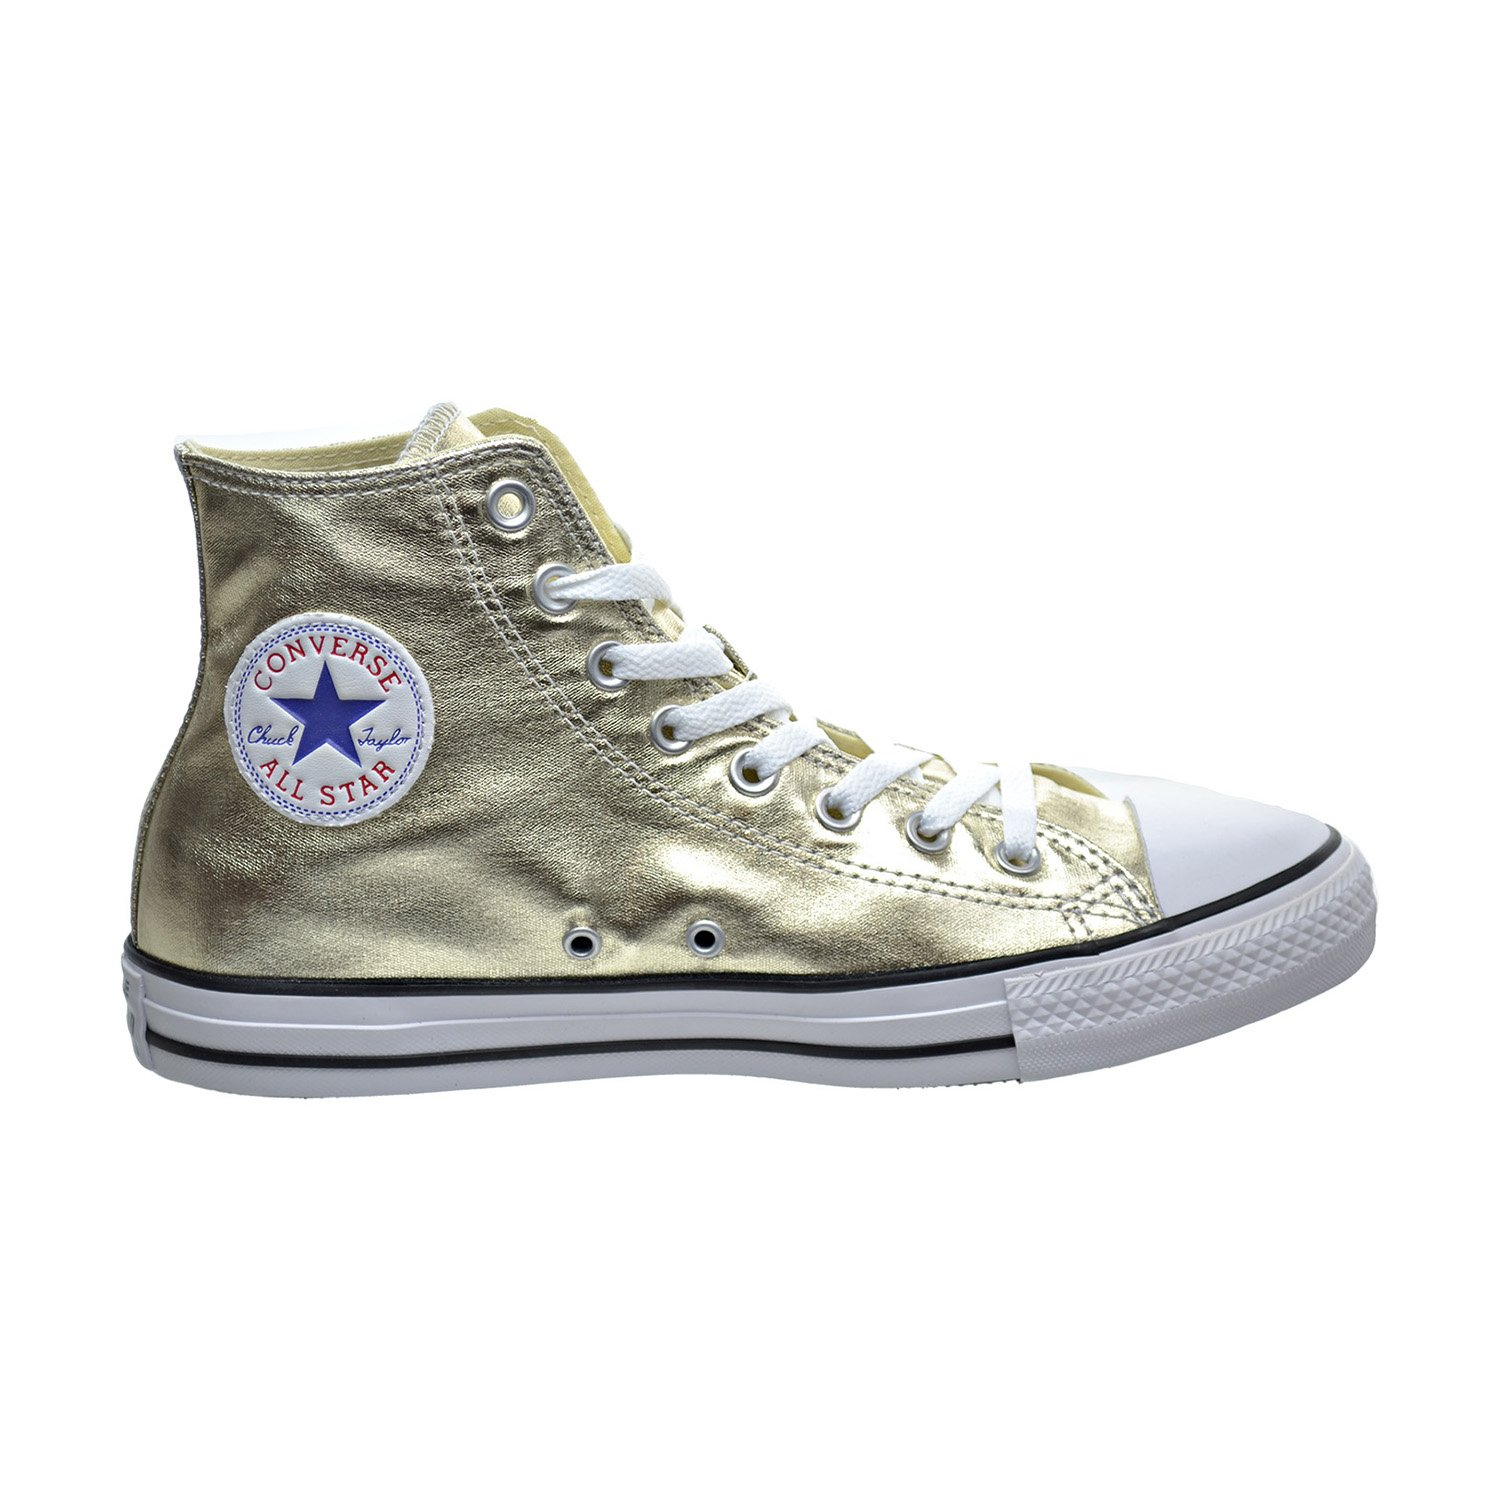 Converse Chuck Taylor Etoiles B000V9HHDS Low LIGHT Top Sneakers Chuck Sneaker Mode LIGHT GOLD WHITE BLACK 56b02ac - shopssong.space